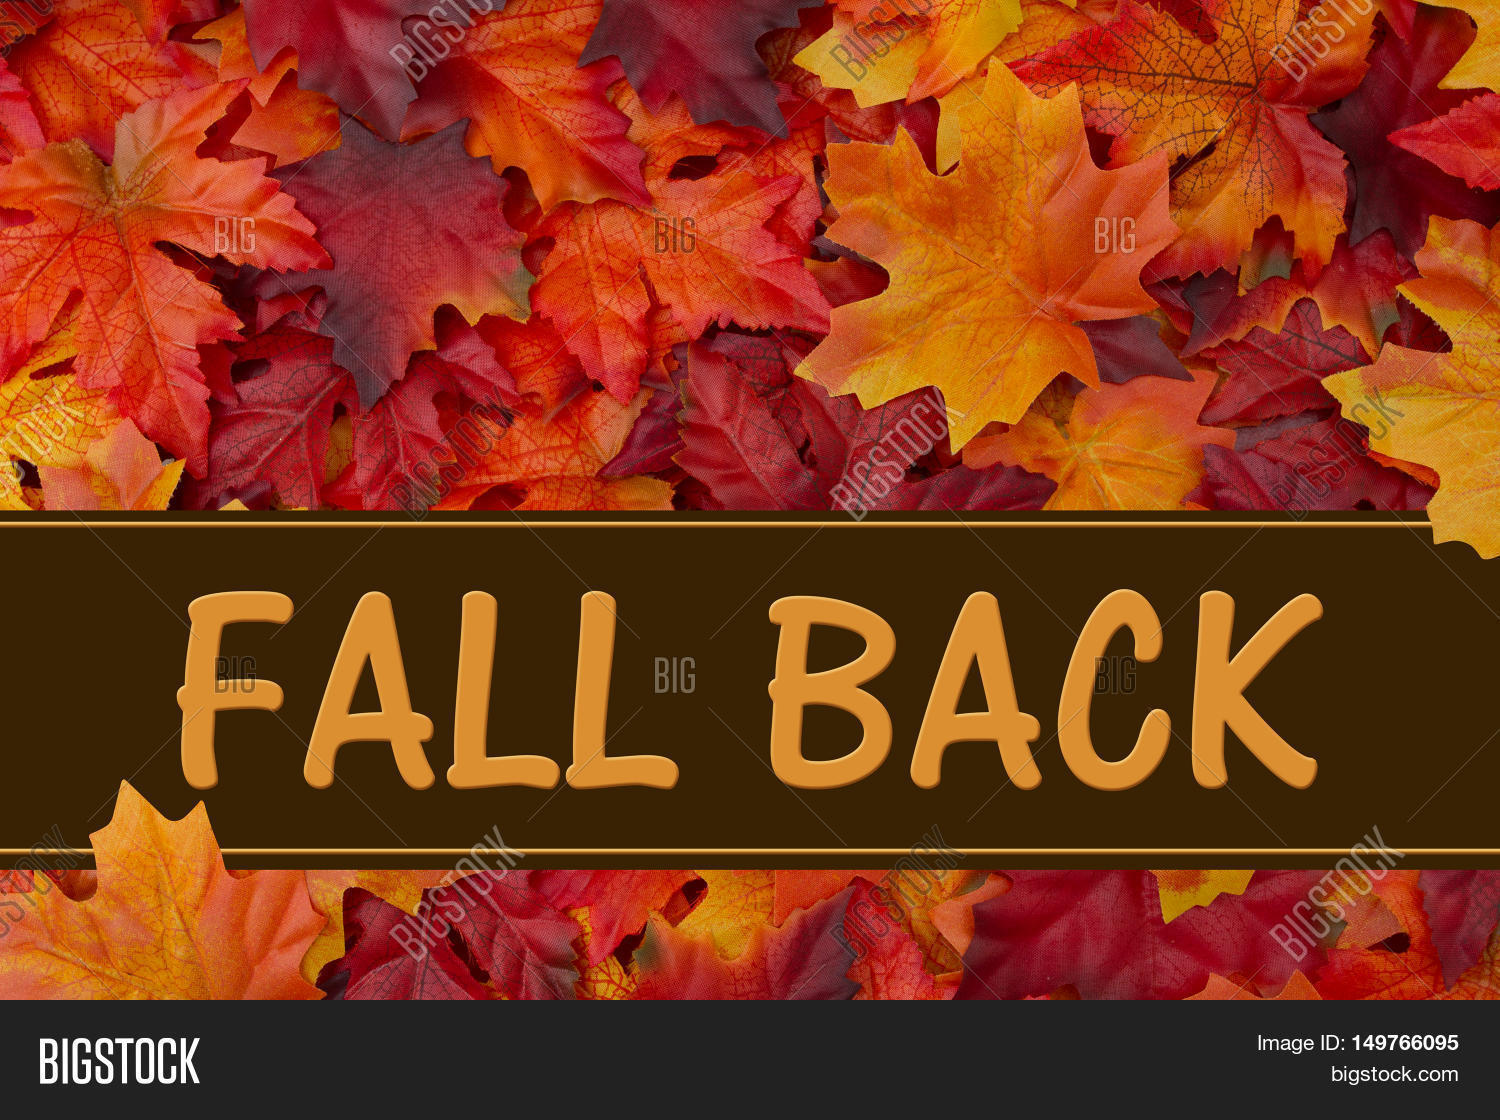 Fall Back Message Some Image Photo Free Trial Bigstock